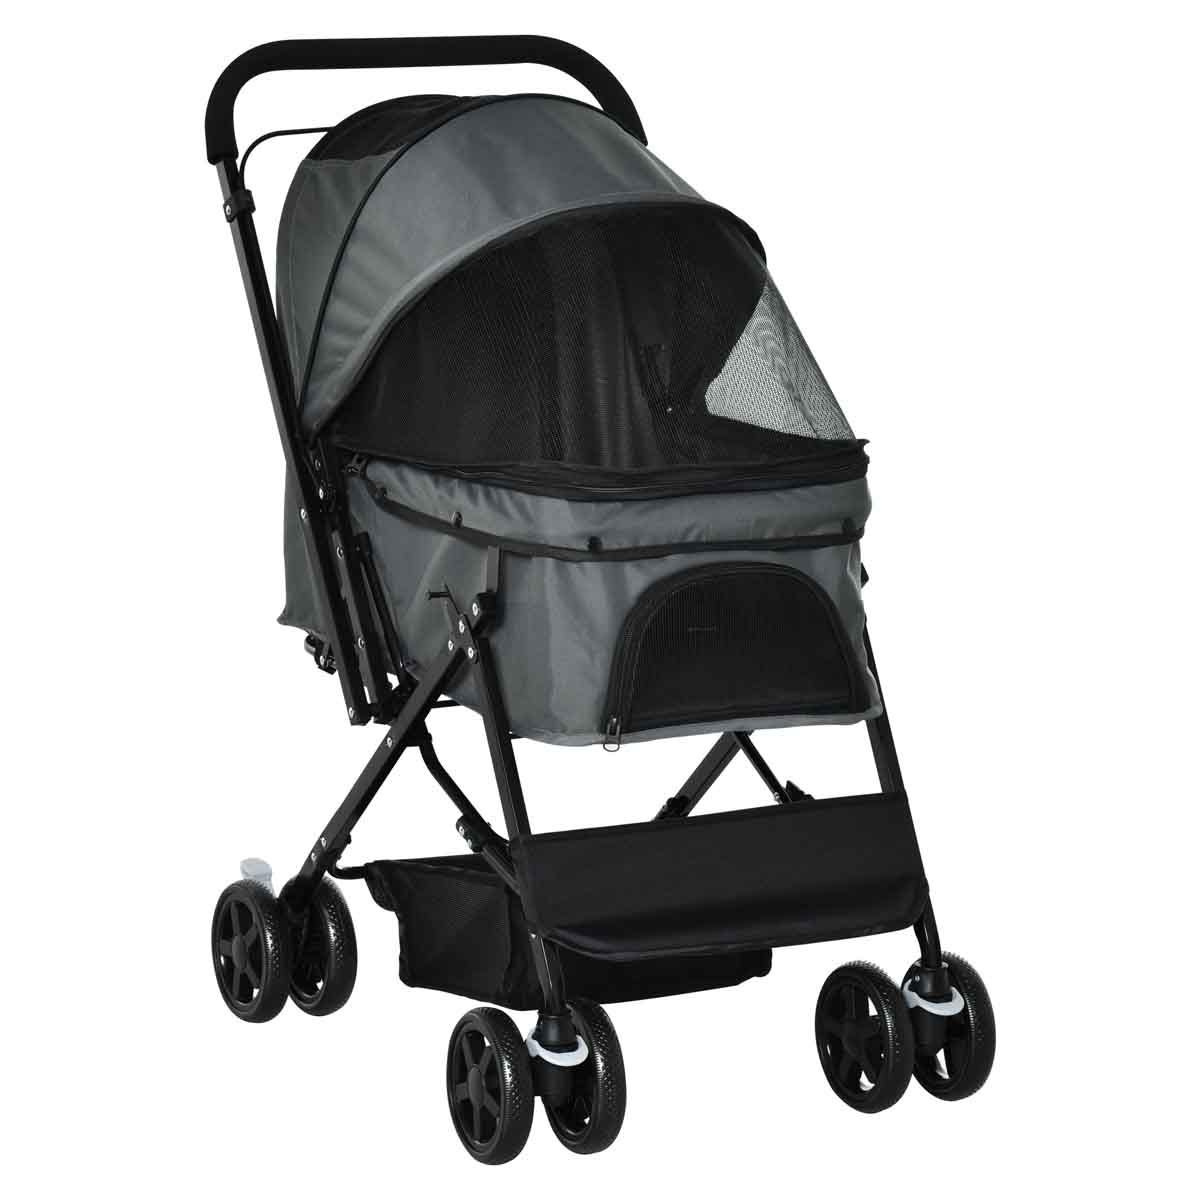 PawHut Pet Foldable Stroller/Travel Carriage with Reversible Handle - Grey